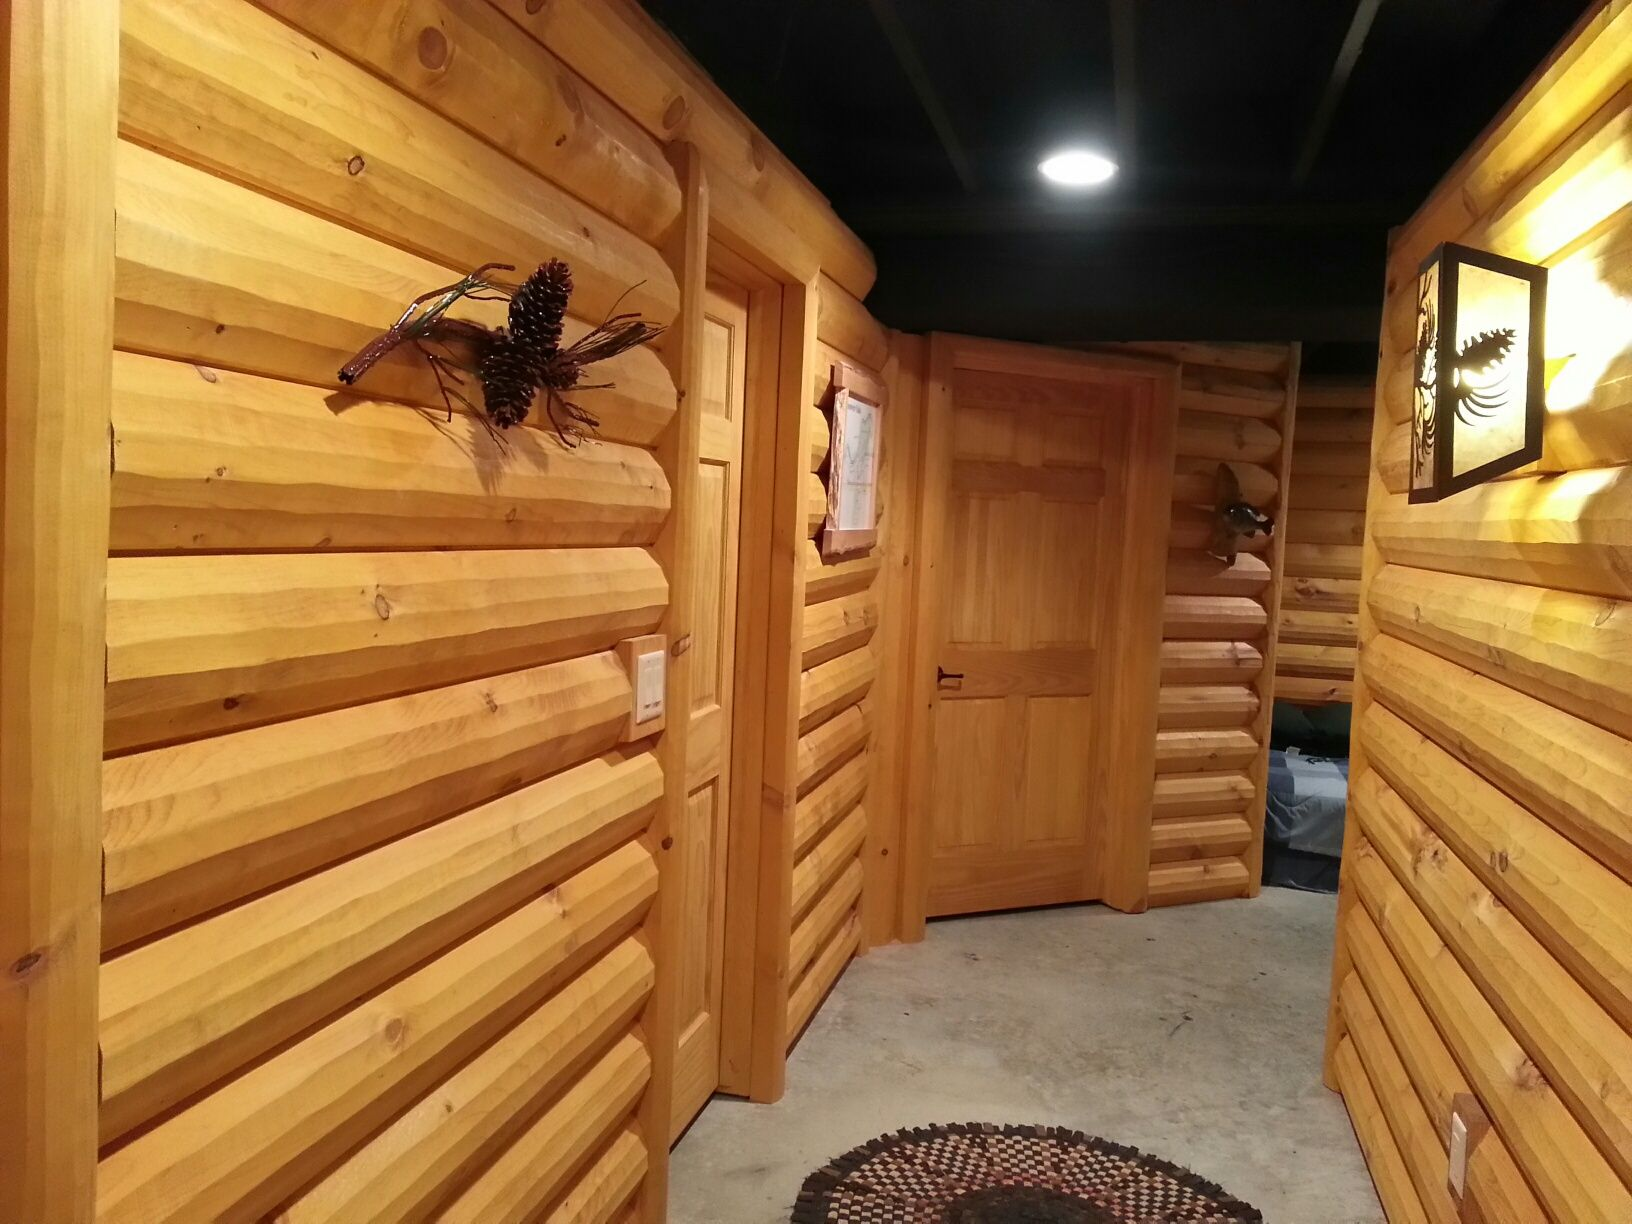 3x8 Log Siding In Hallway Log Cabin Homes Log Home Interior Log Homes